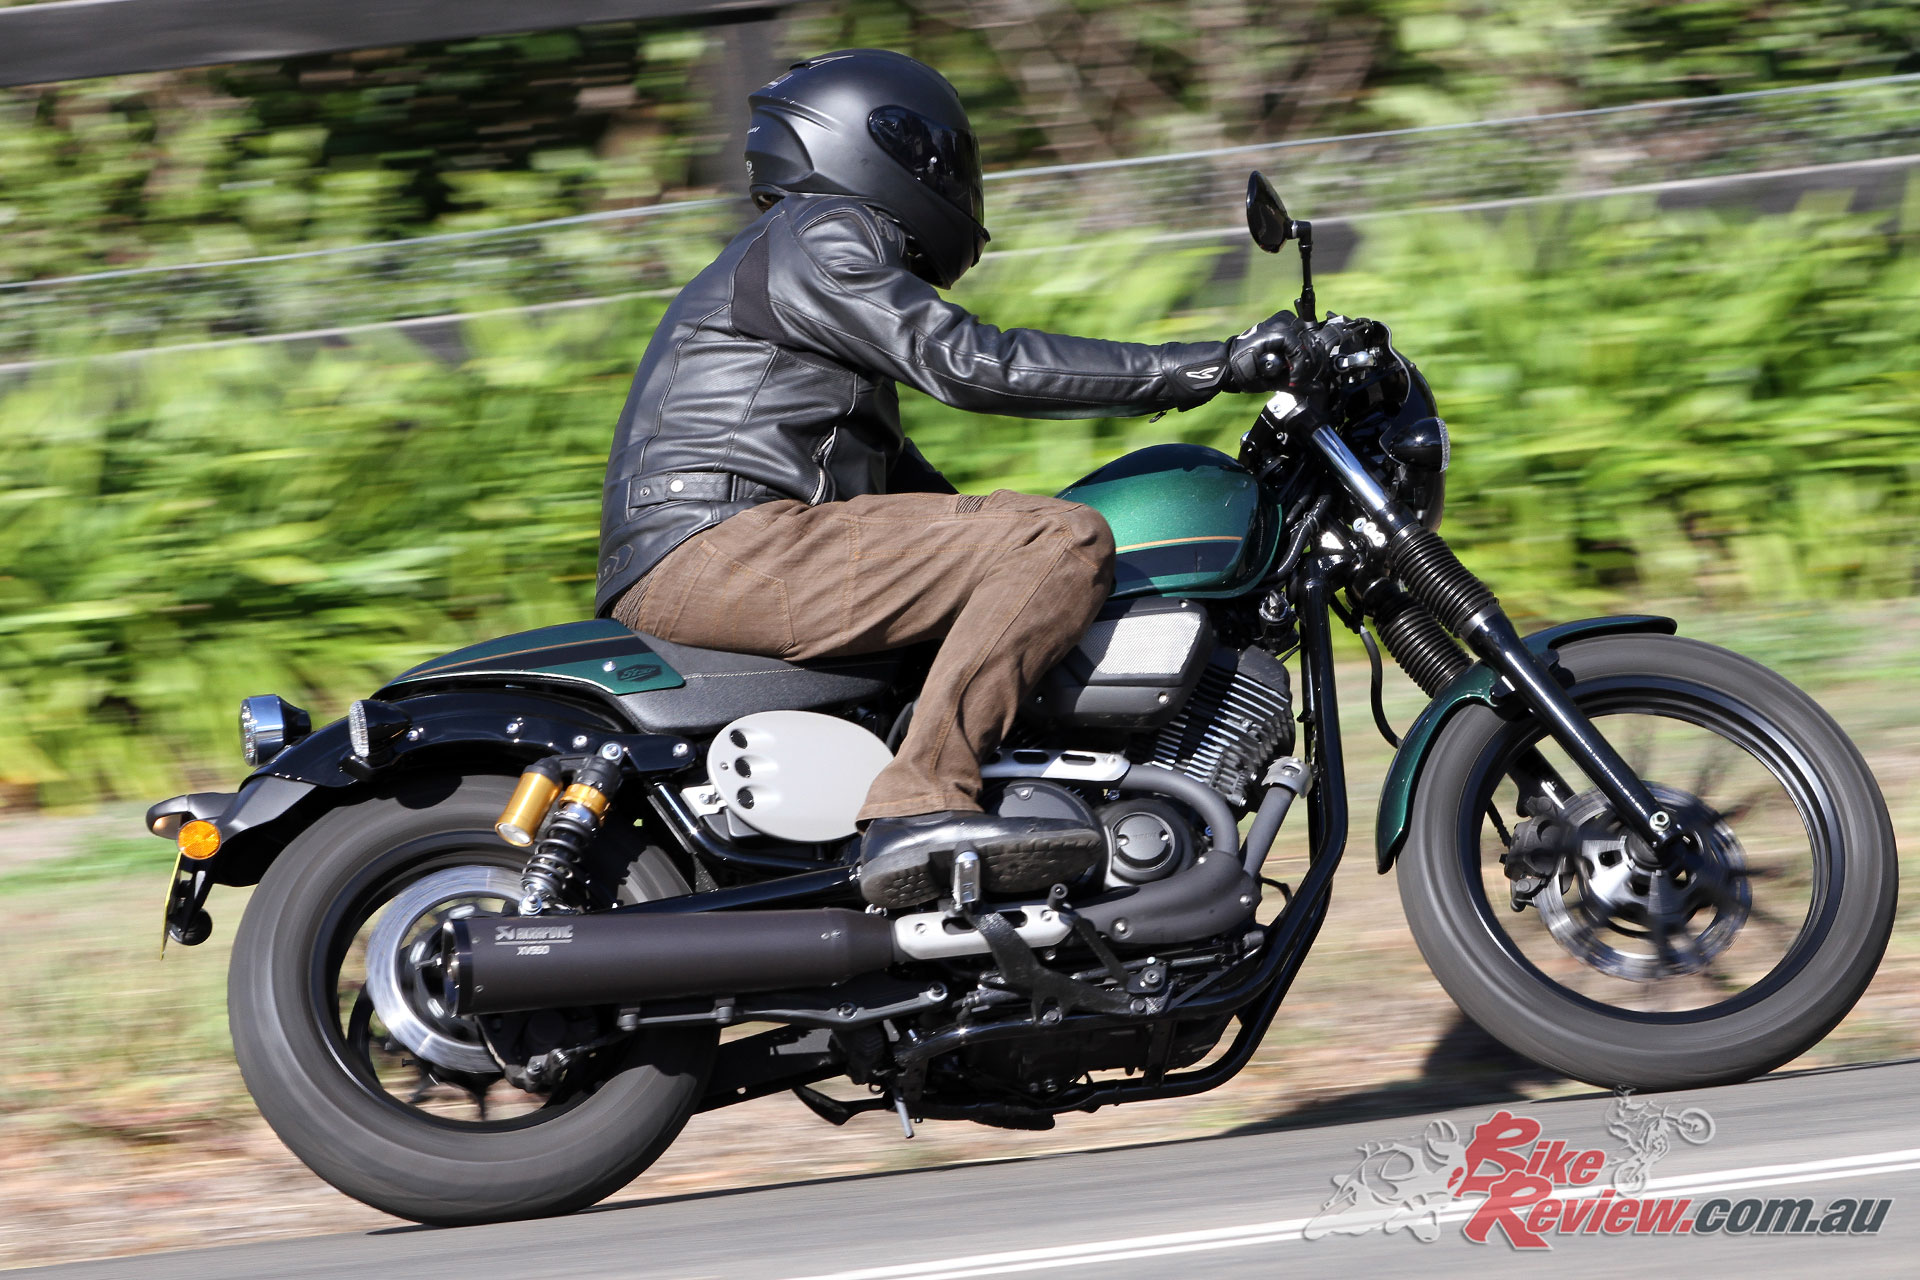 Review: 2018 Yamaha Bolt C-Spec 'Cafe' - Bike Review